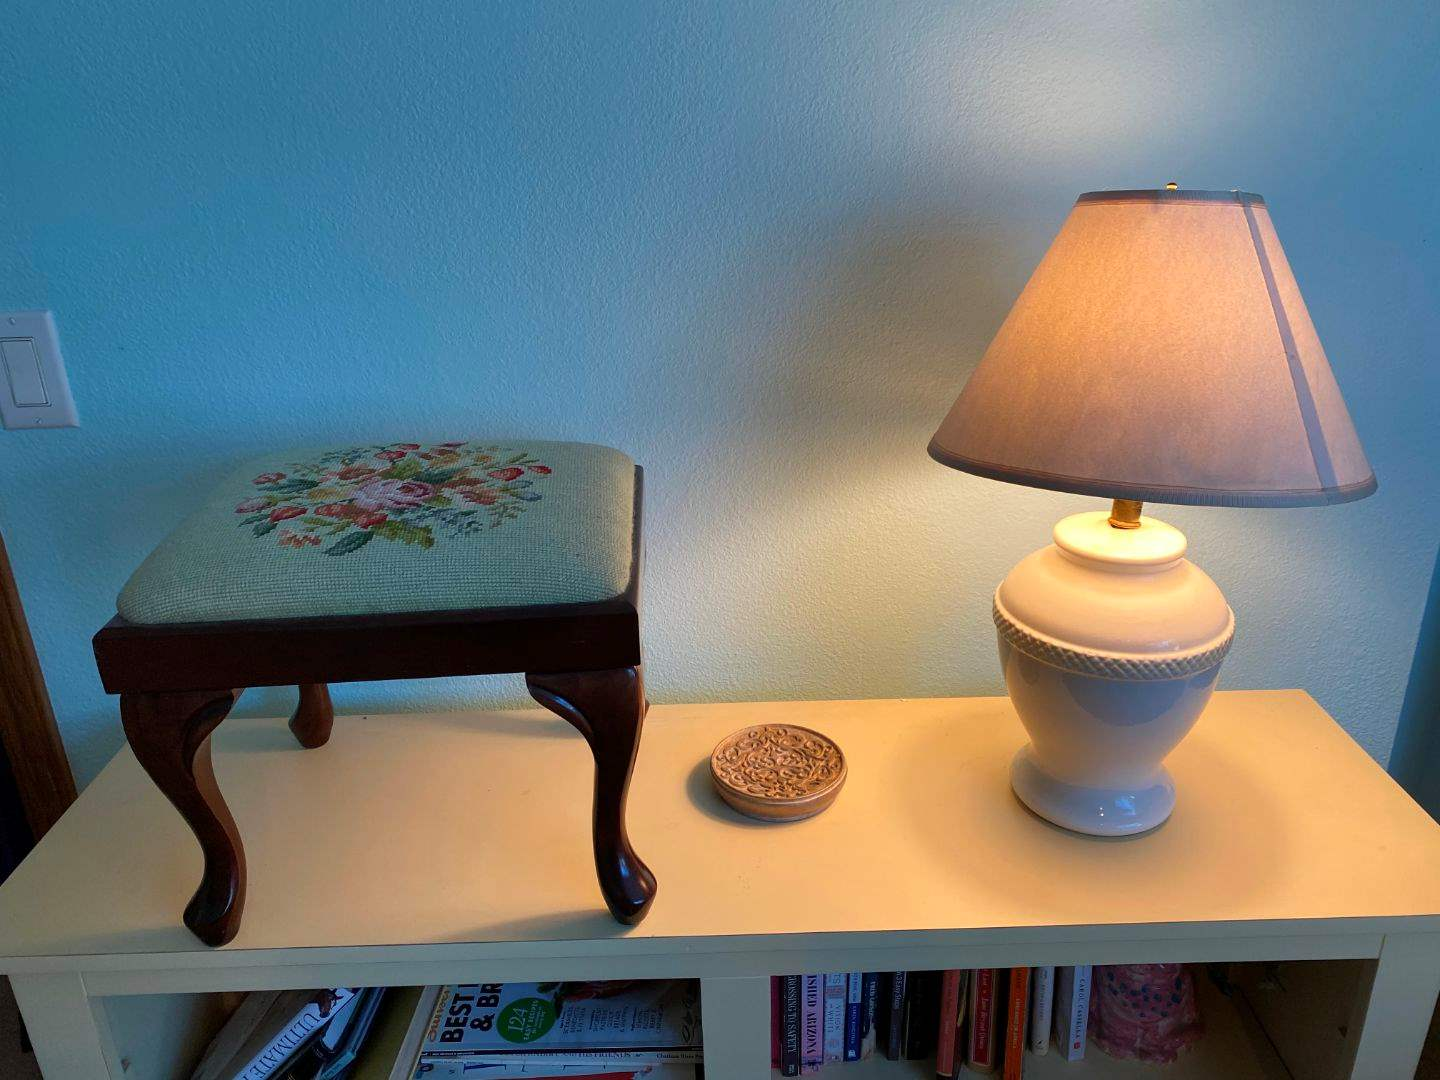 Lot # 115 - Small Foot Stool, Table Lamp & Candle Holder (main image)